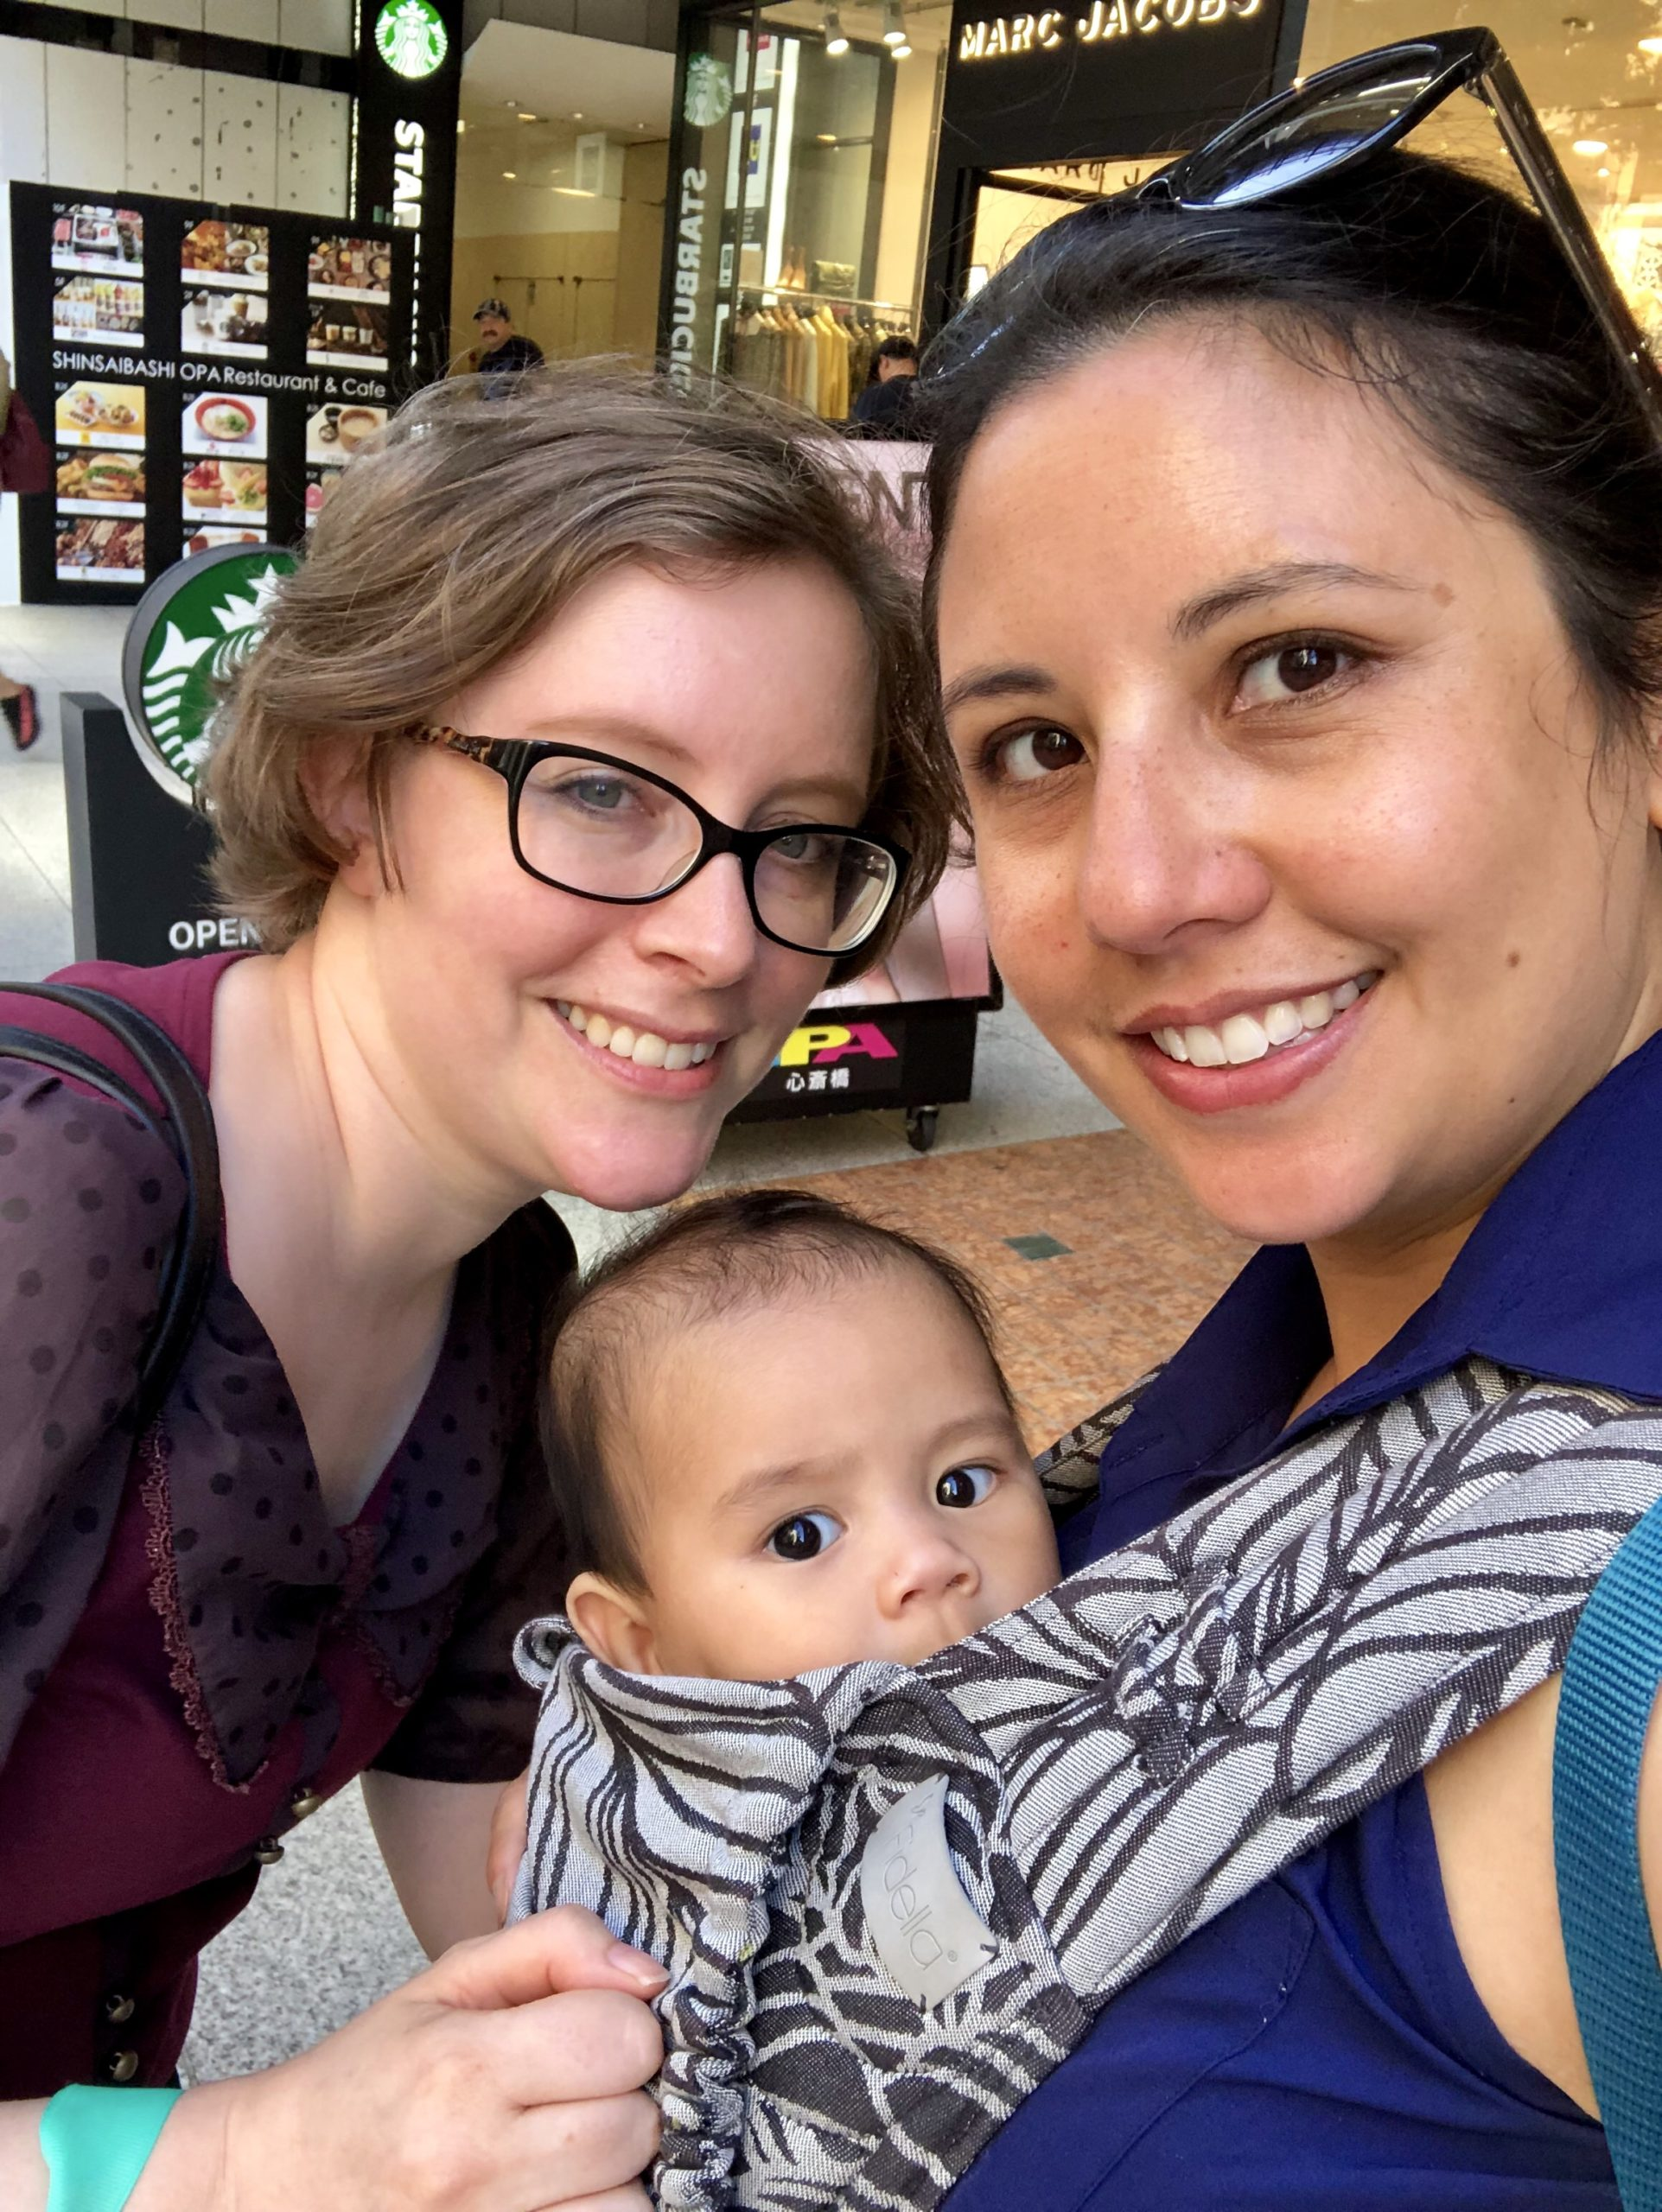 Two women, one holding a baby in a carrier